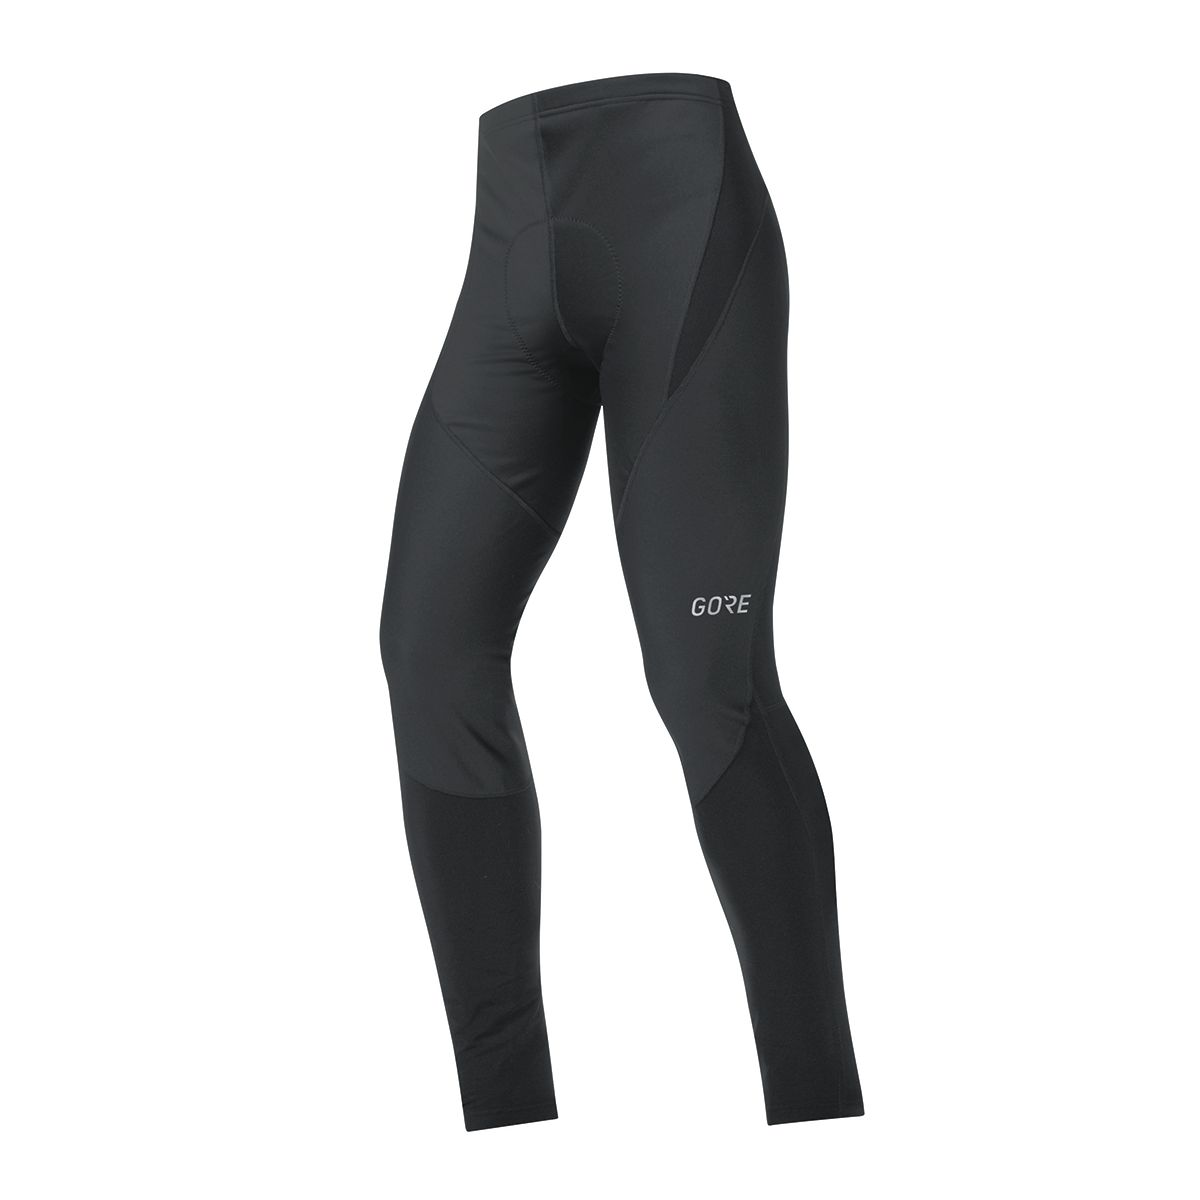 C3 PARTIAL GORE WINDSTOPPER TIGHTS+ Herren Radhose lang